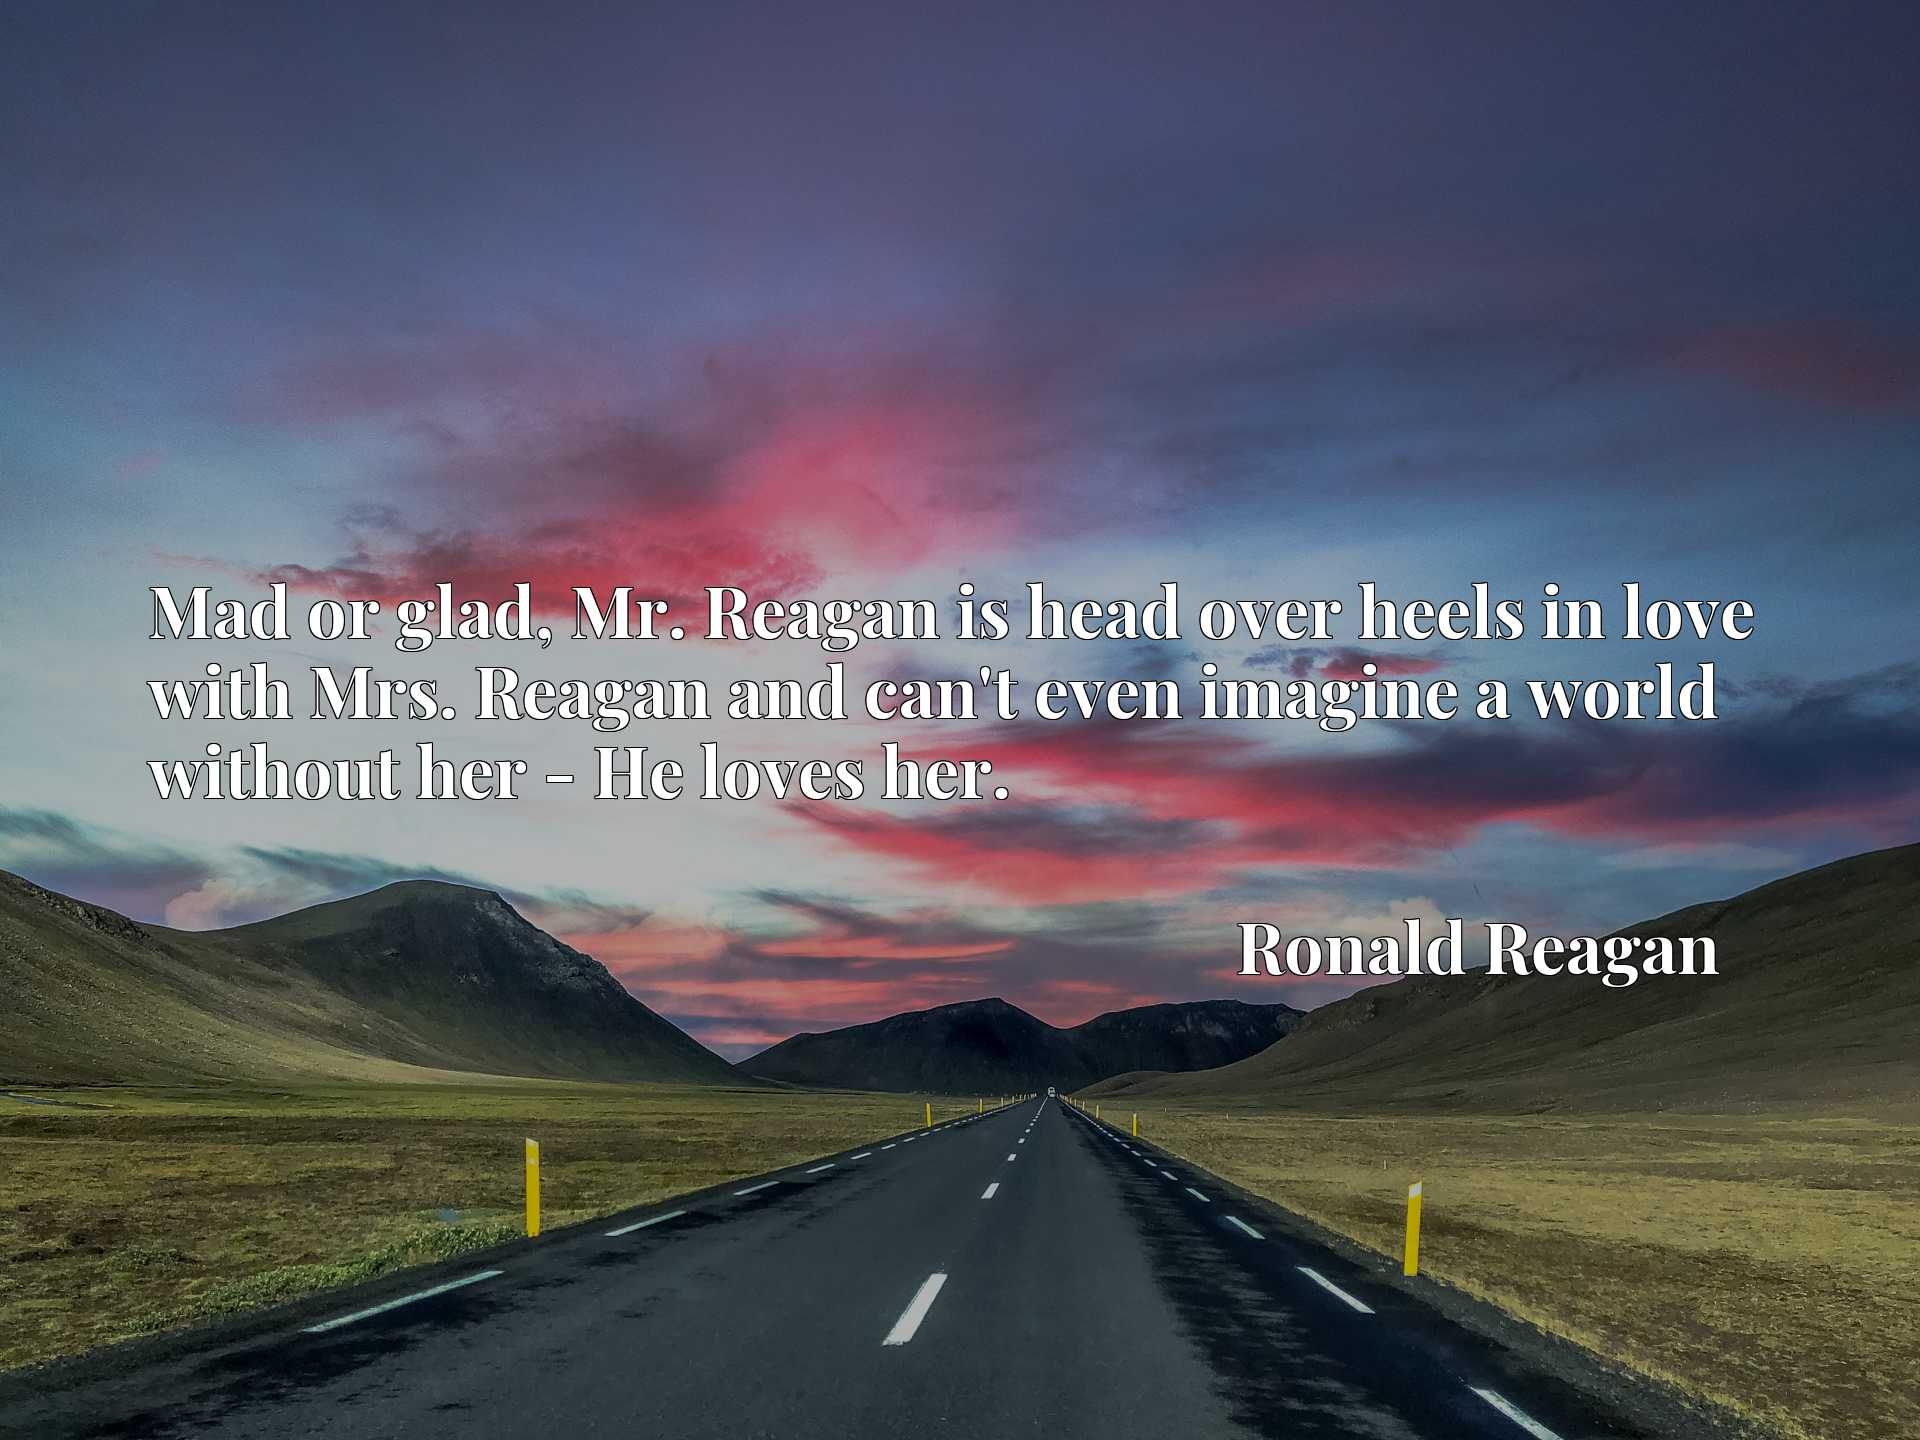 Quote Picture :Mad or glad, Mr. Reagan is head over heels in love with Mrs. Reagan and can't even imagine a world without her - He loves her.